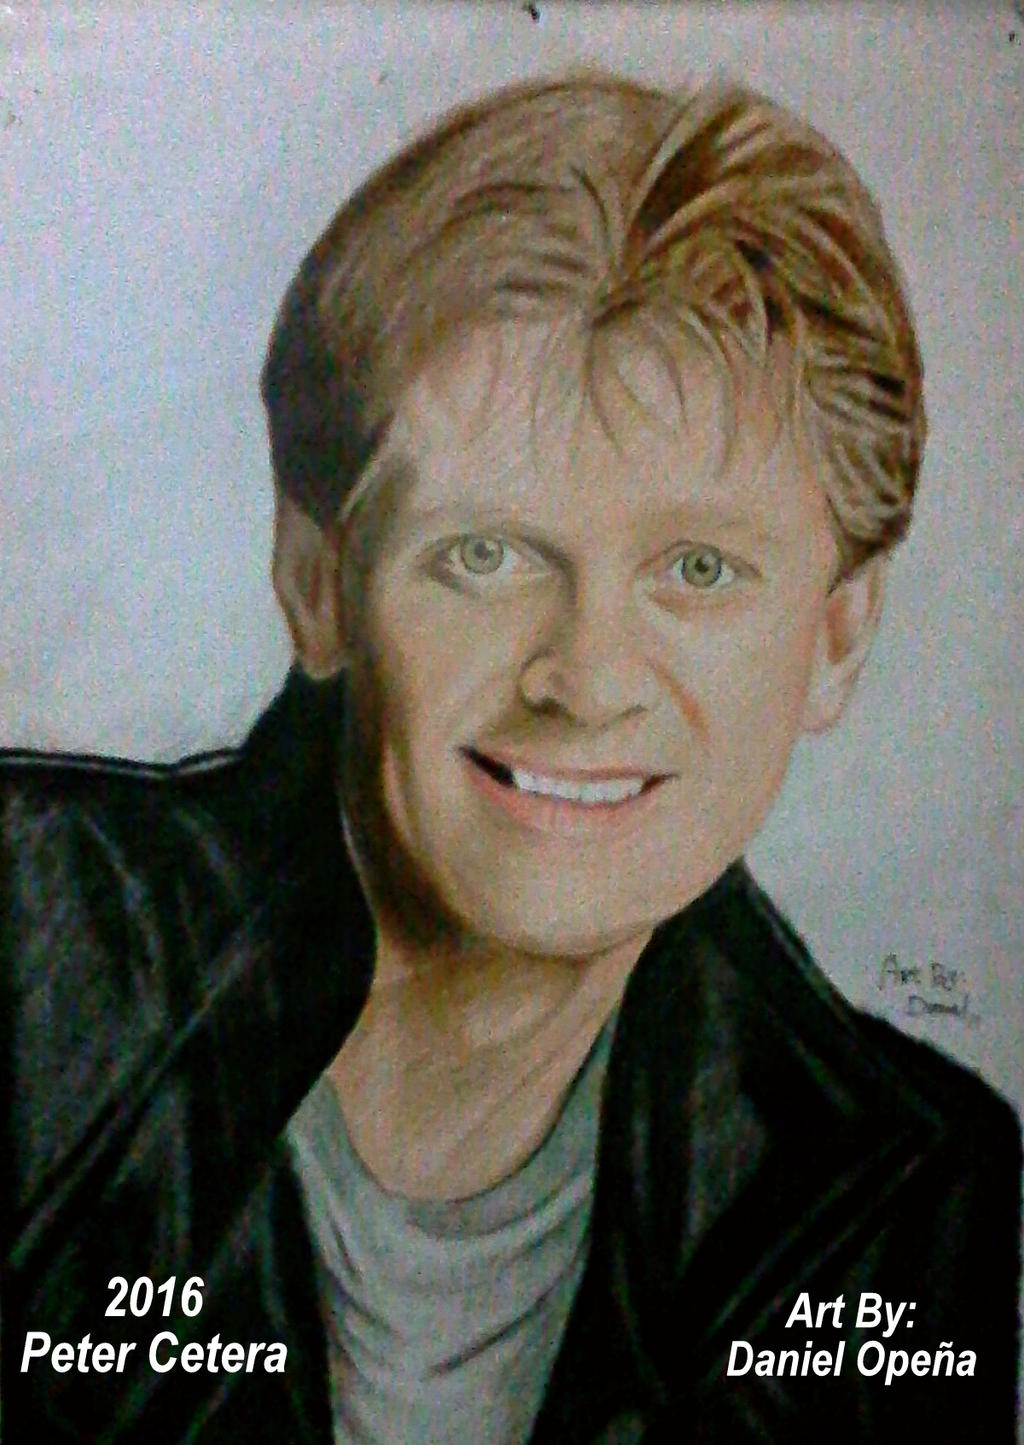 Peter Cetera (2016) by nielopena